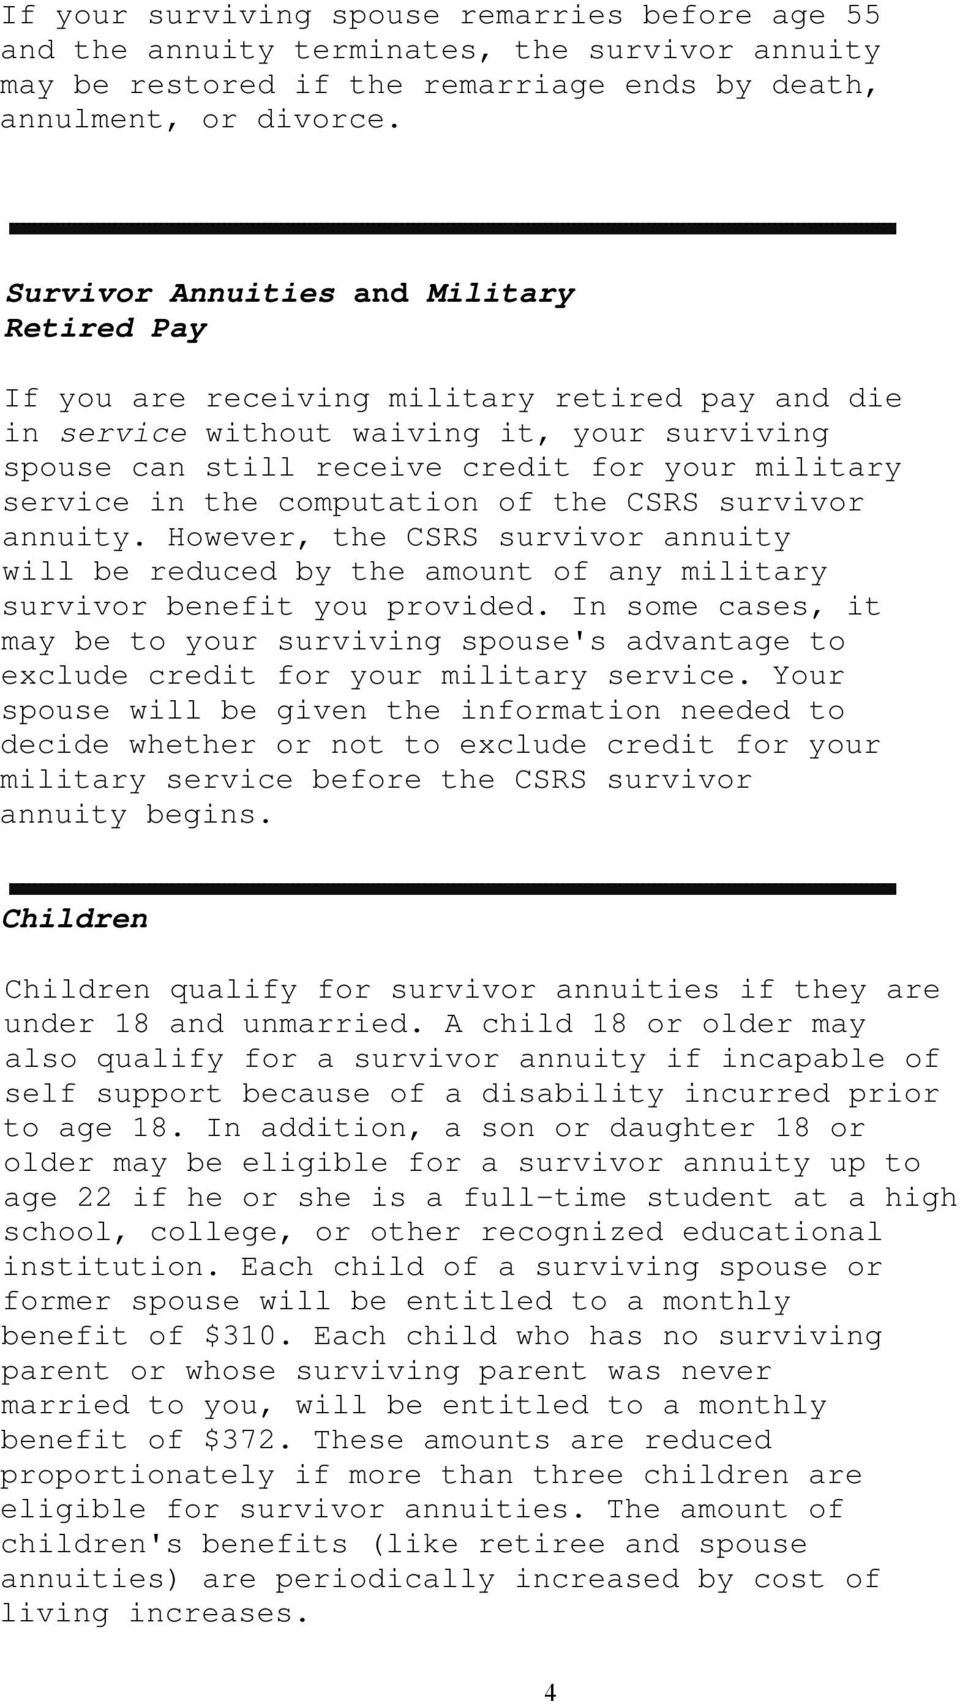 in the computation of the CSRS survivor annuity. However, the CSRS survivor annuity will be reduced by the amount of any military survivor benefit you provided.